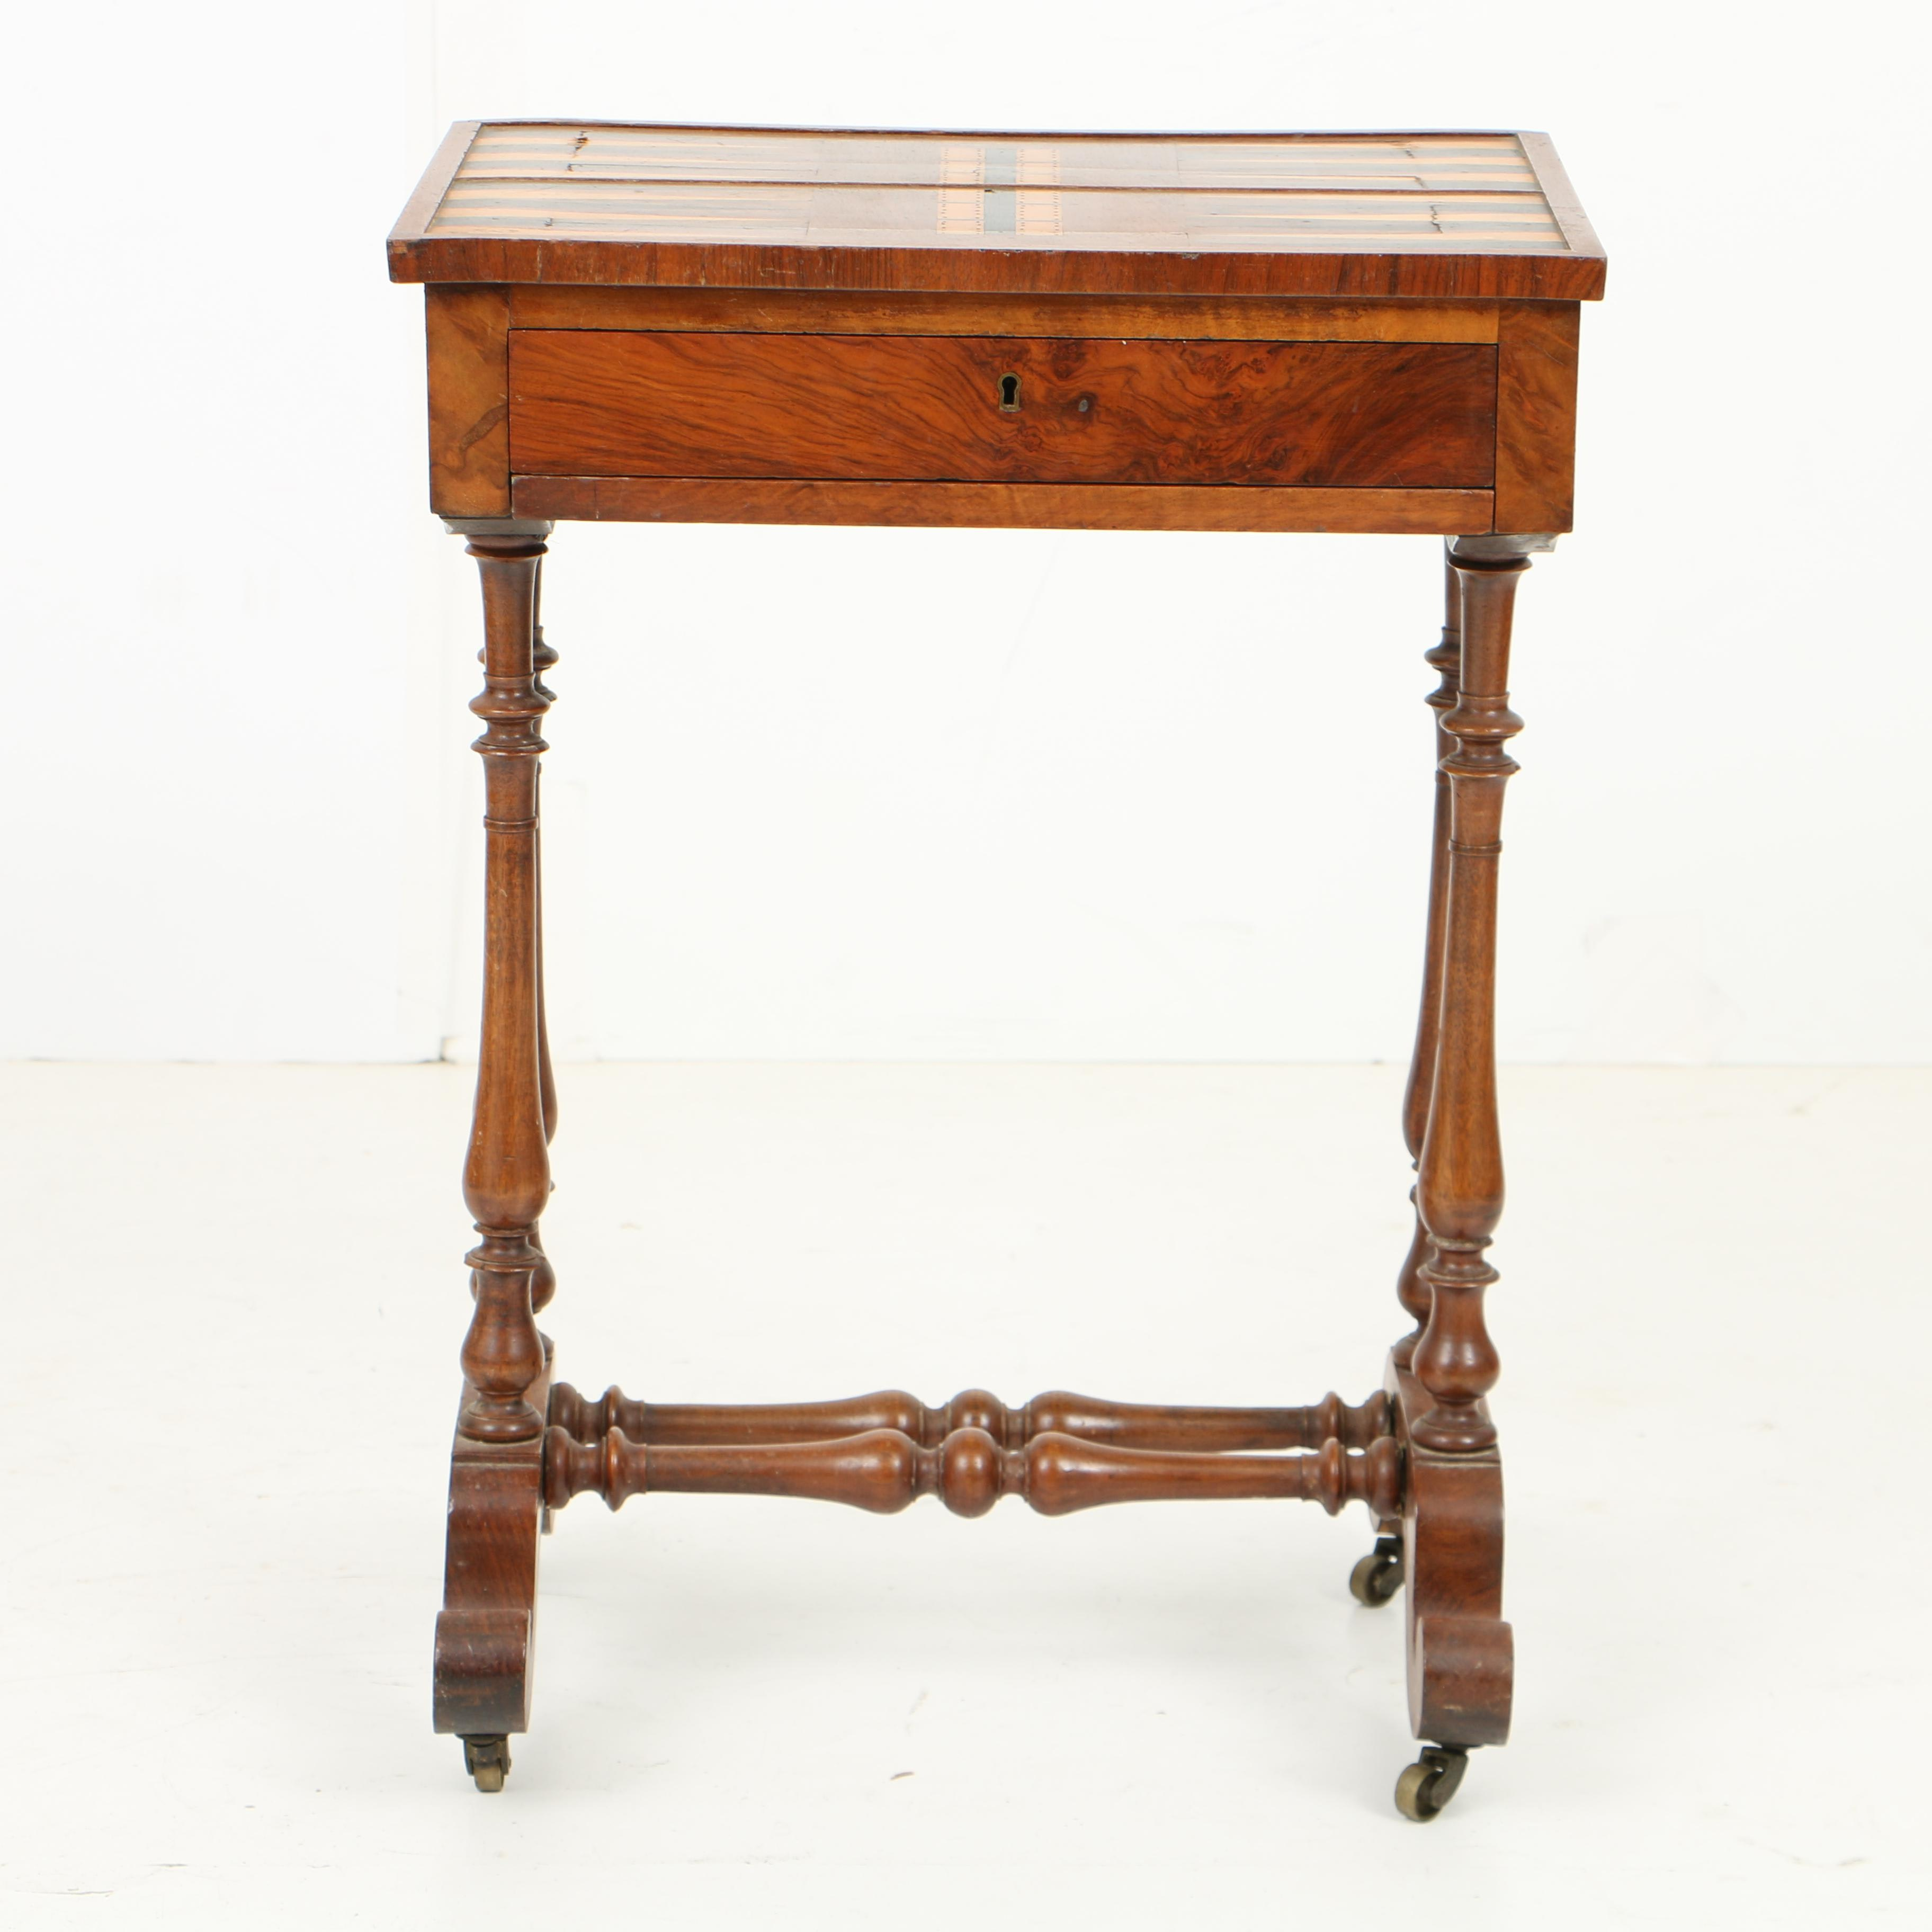 Antique Game or Work Table with Parquetry Top, Mid 19th Century